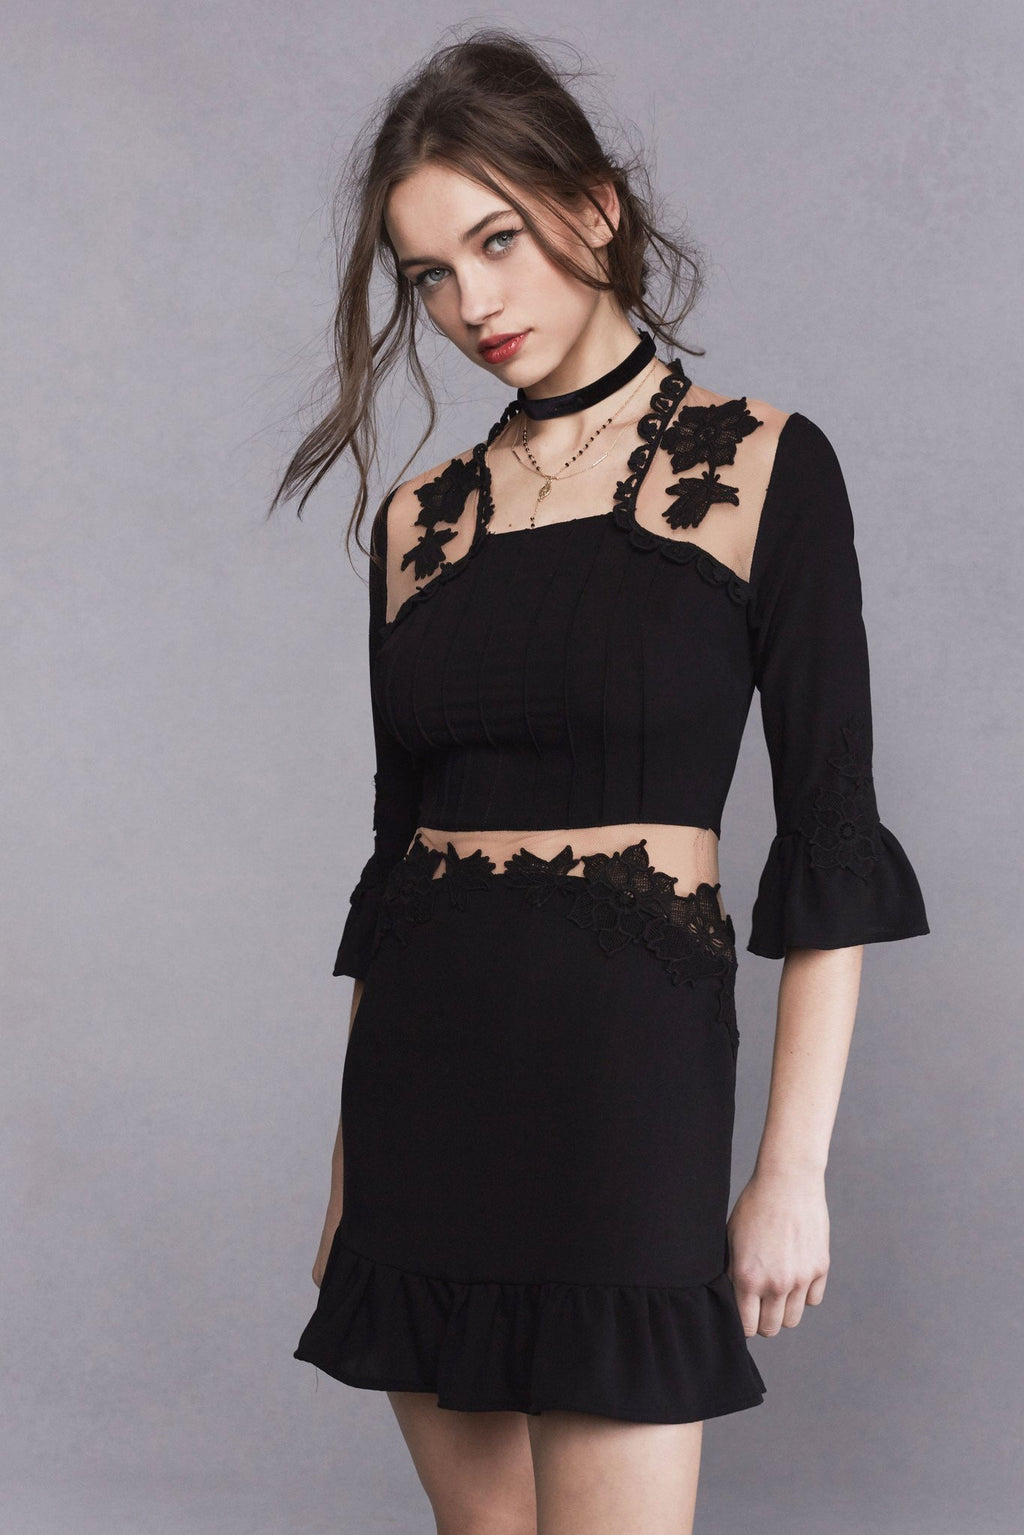 Lilou Applique Dress - Black